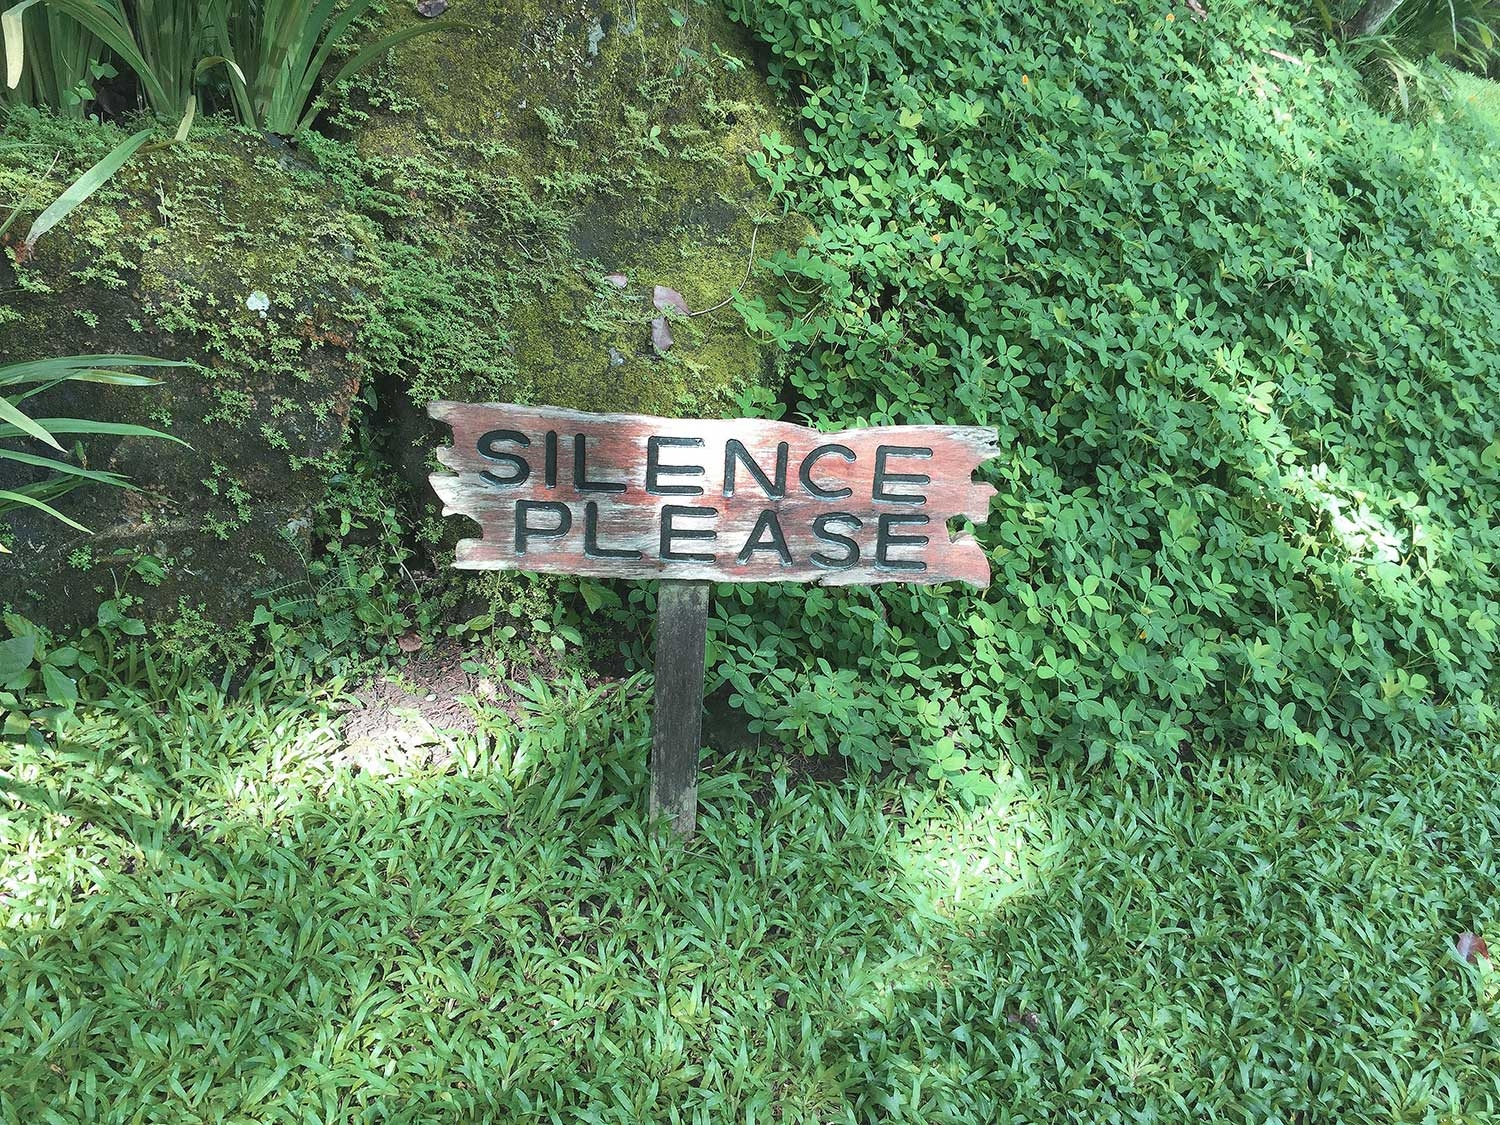 A sign in the grass that reads 'silence please'